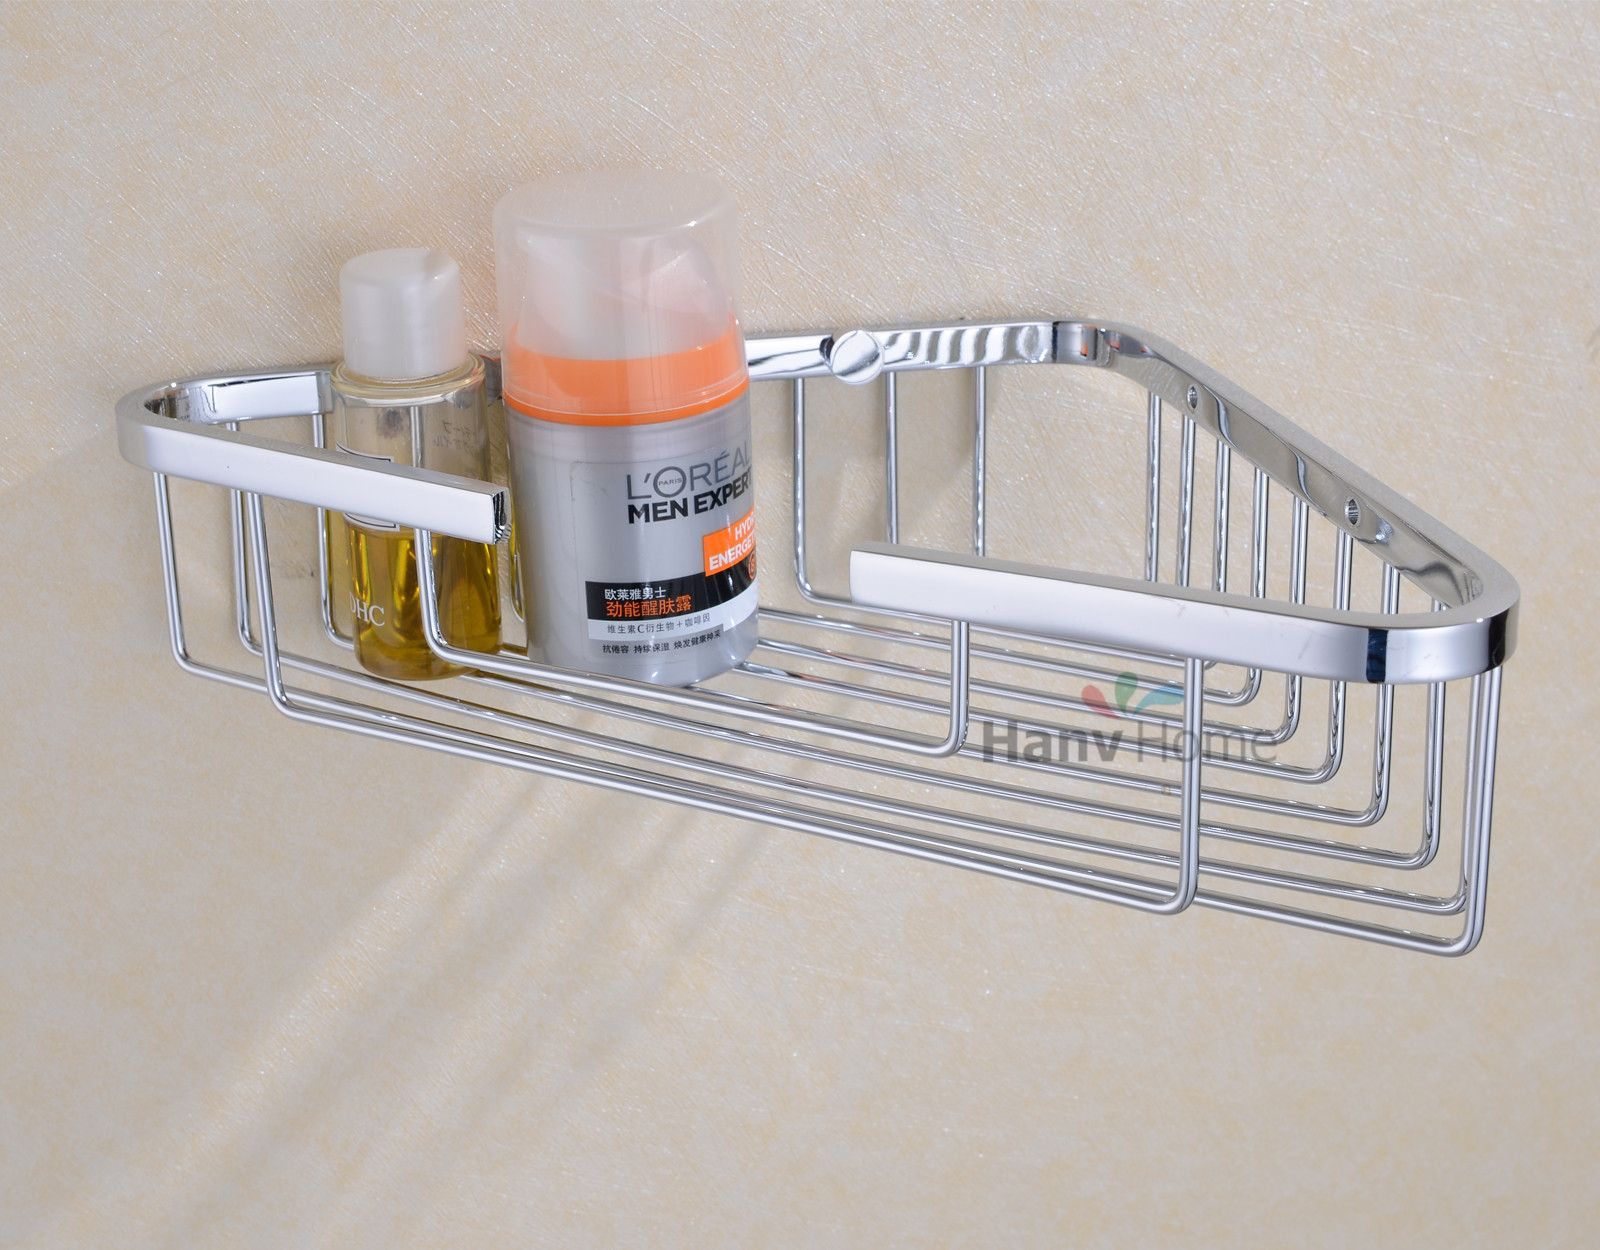 Corner Shower Caddy High Quality Stainless Steel Construction With 12pcs Stainless Steel Wire Strong Enough Size 8 3 W X 8 3 D X 2 4 H Not Absolute Right A